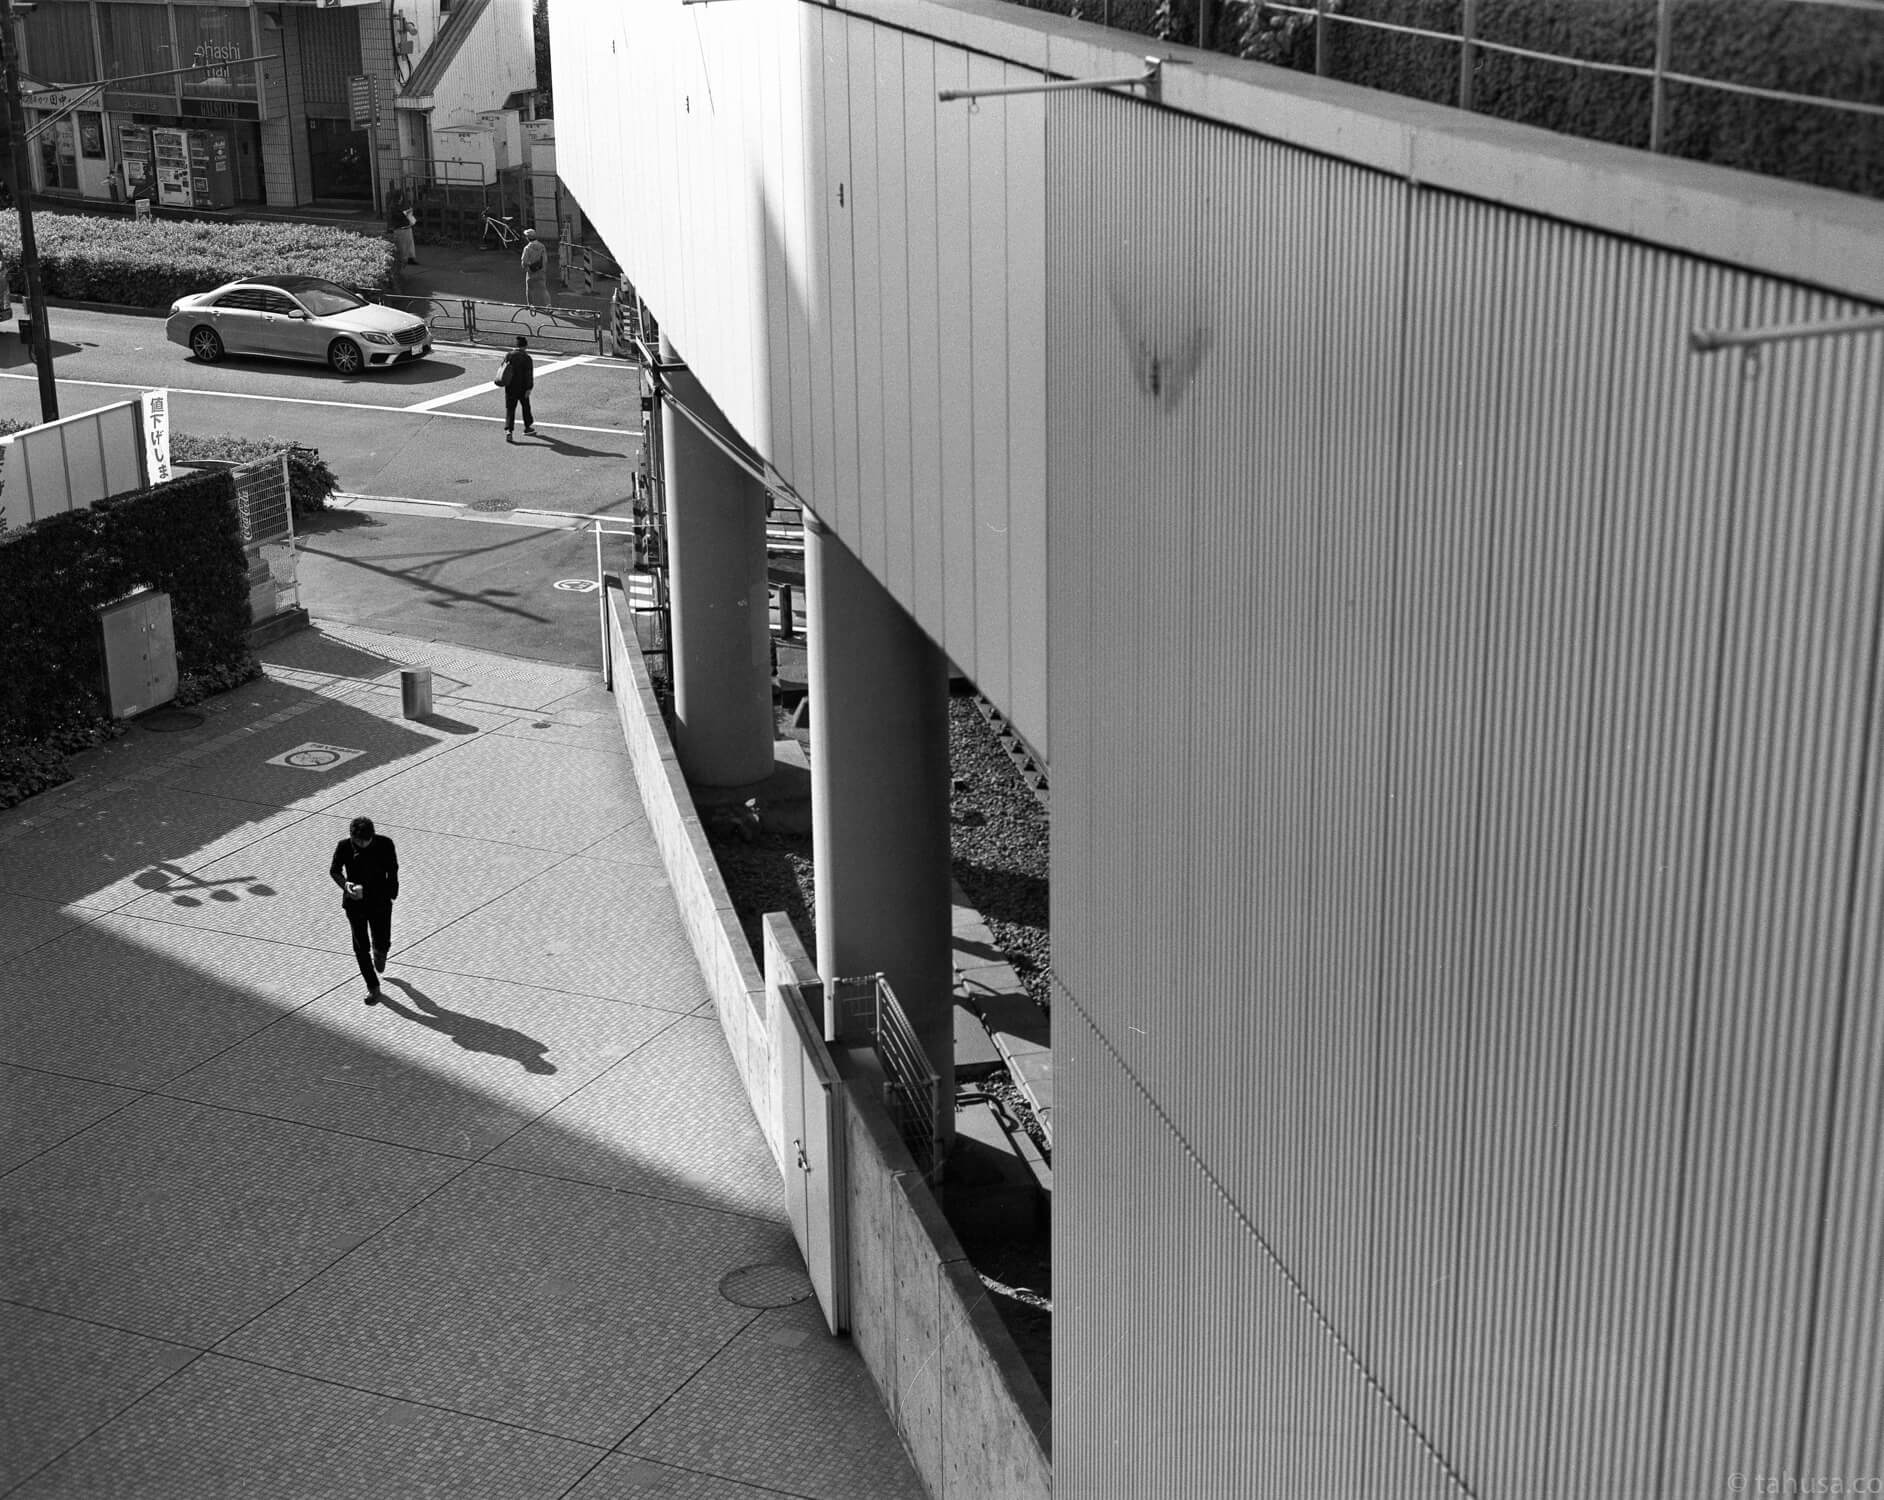 man-walking-under-sunlight-creating-shadow-in-shinjuku-district-japan-street-tokyo-streetphotography-blackandwhite-BW-B&W-japanese-travel-with-pentax-67-6x7-mediumformat-medium-format-120-Delta-400-Ilford-Film-analog-105mm-f2.4-super-takumar